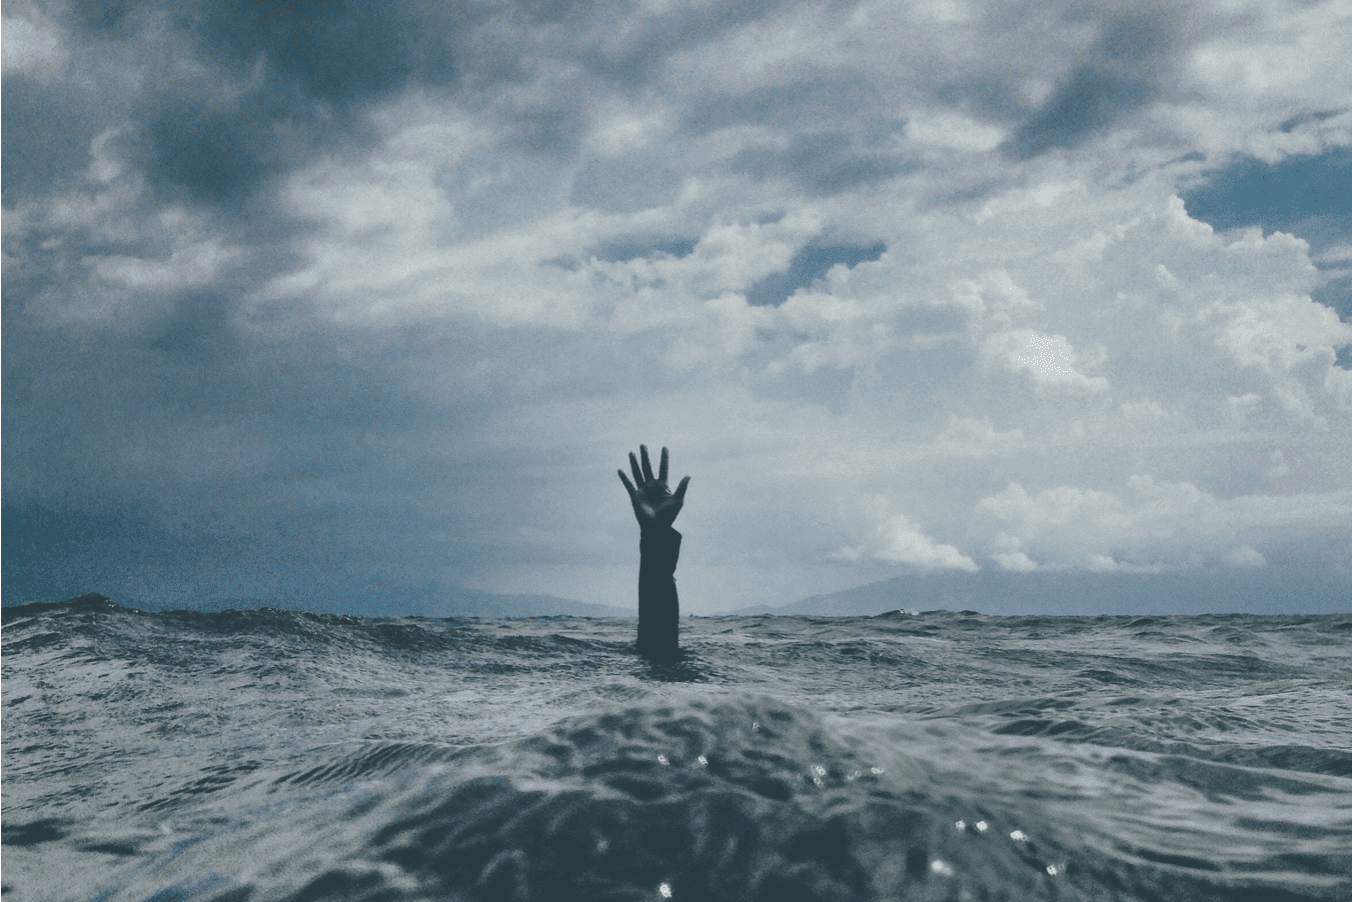 Person's arm and hand reaching up from under water; image by Nikko Macaspac, via Unsplash.com.